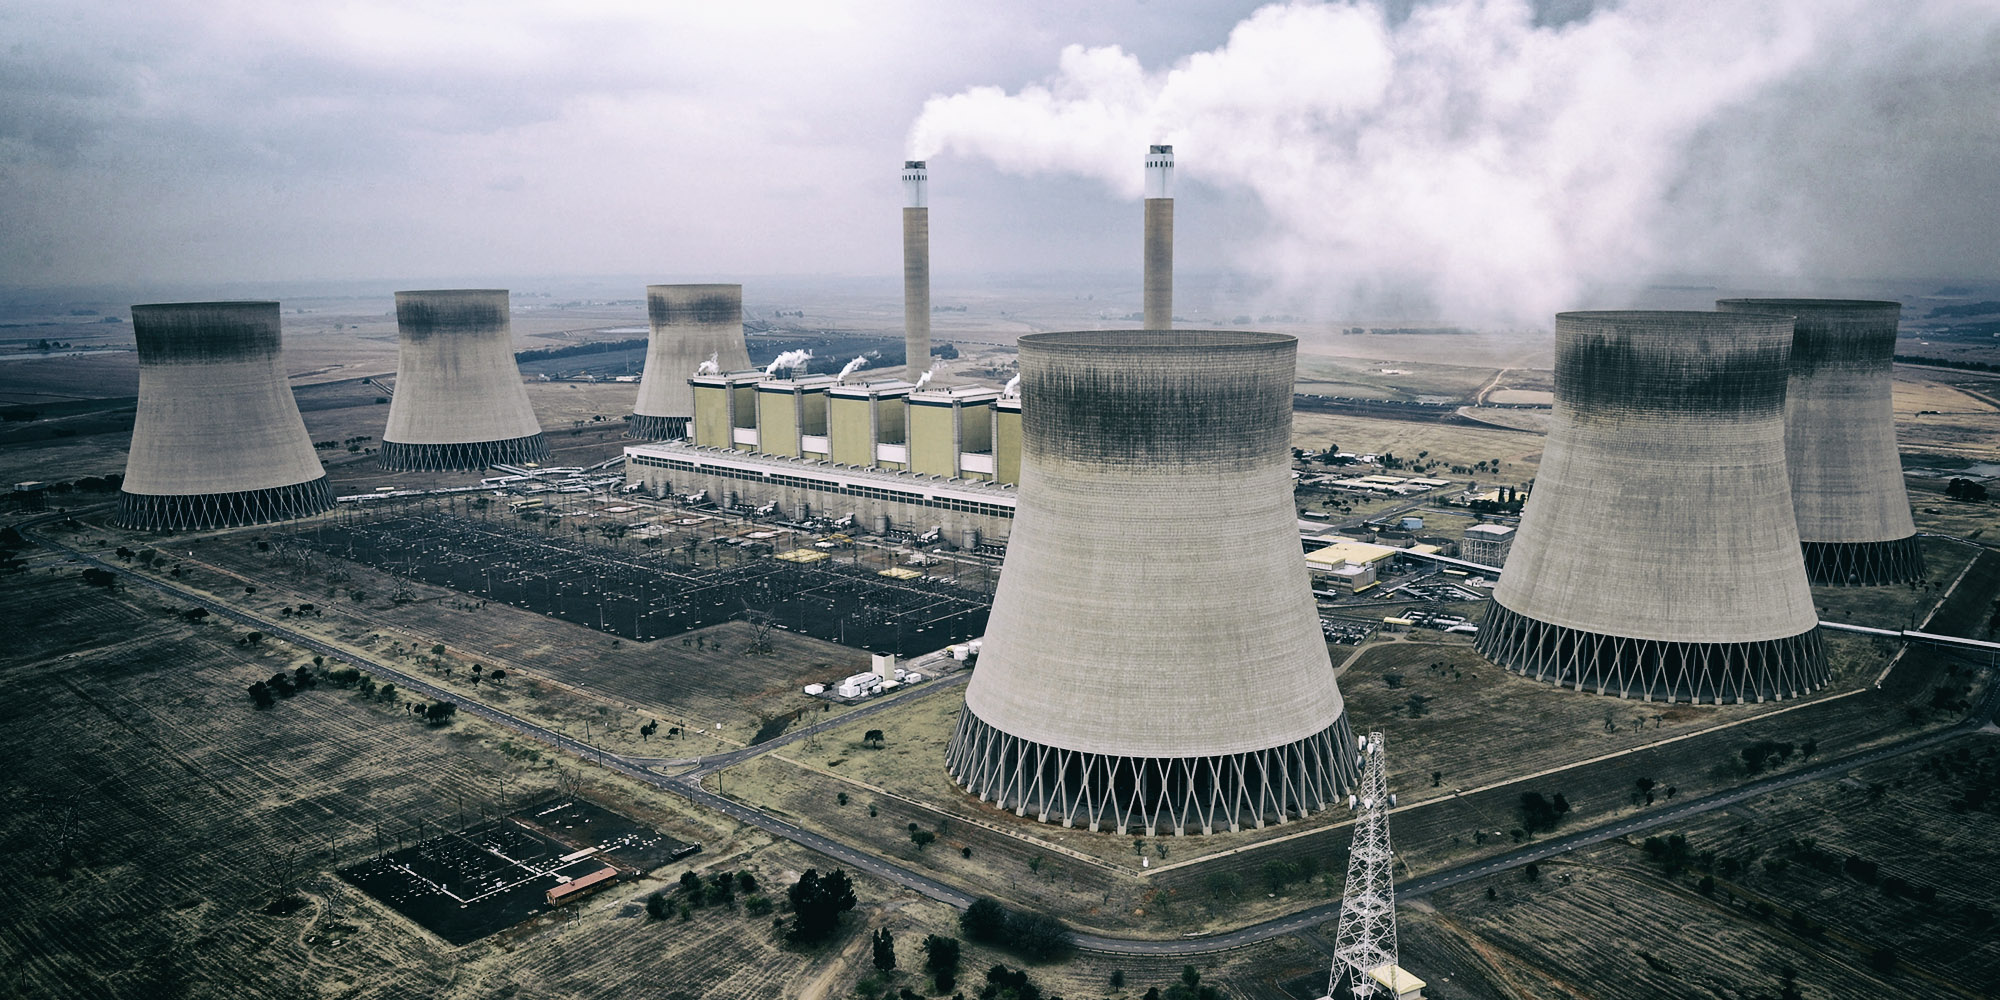 Eskom served with summons for criminal prosecution on charges of air pollution - Daily Maverick